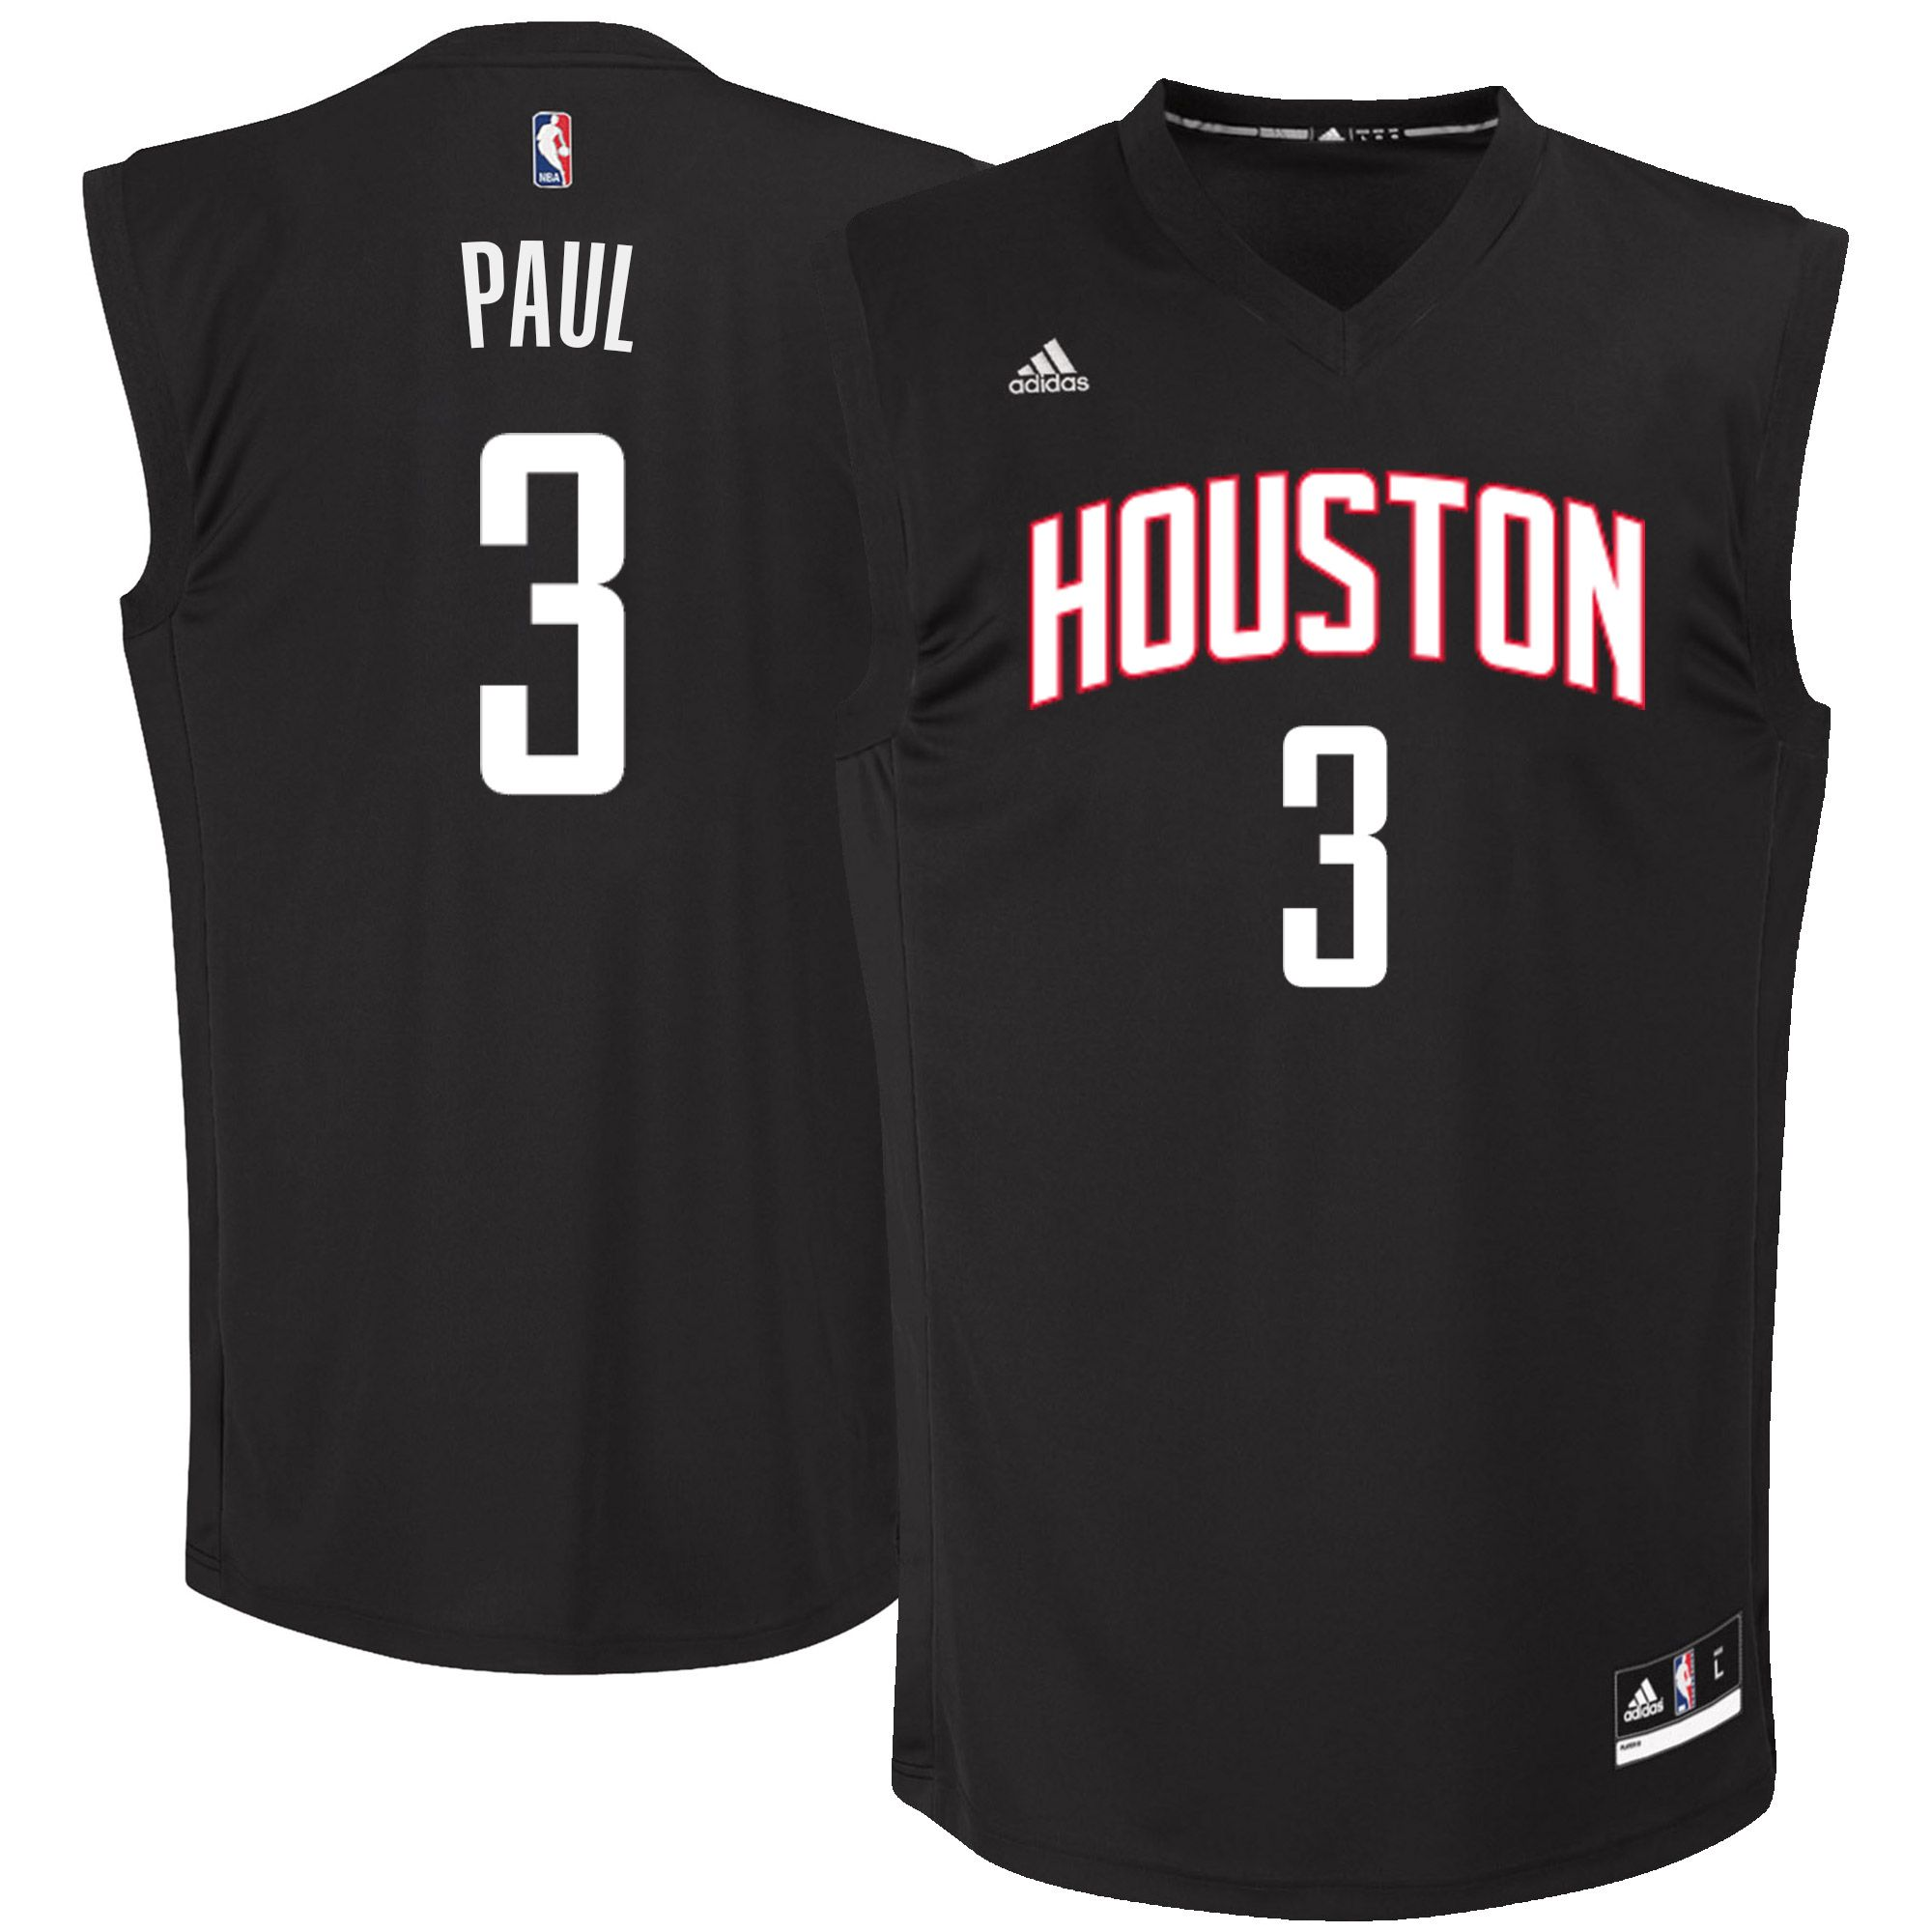 9e2f9f2ef Men s Houston Rockets Chris Paul adidas Black Chase Fashion Jersey ...